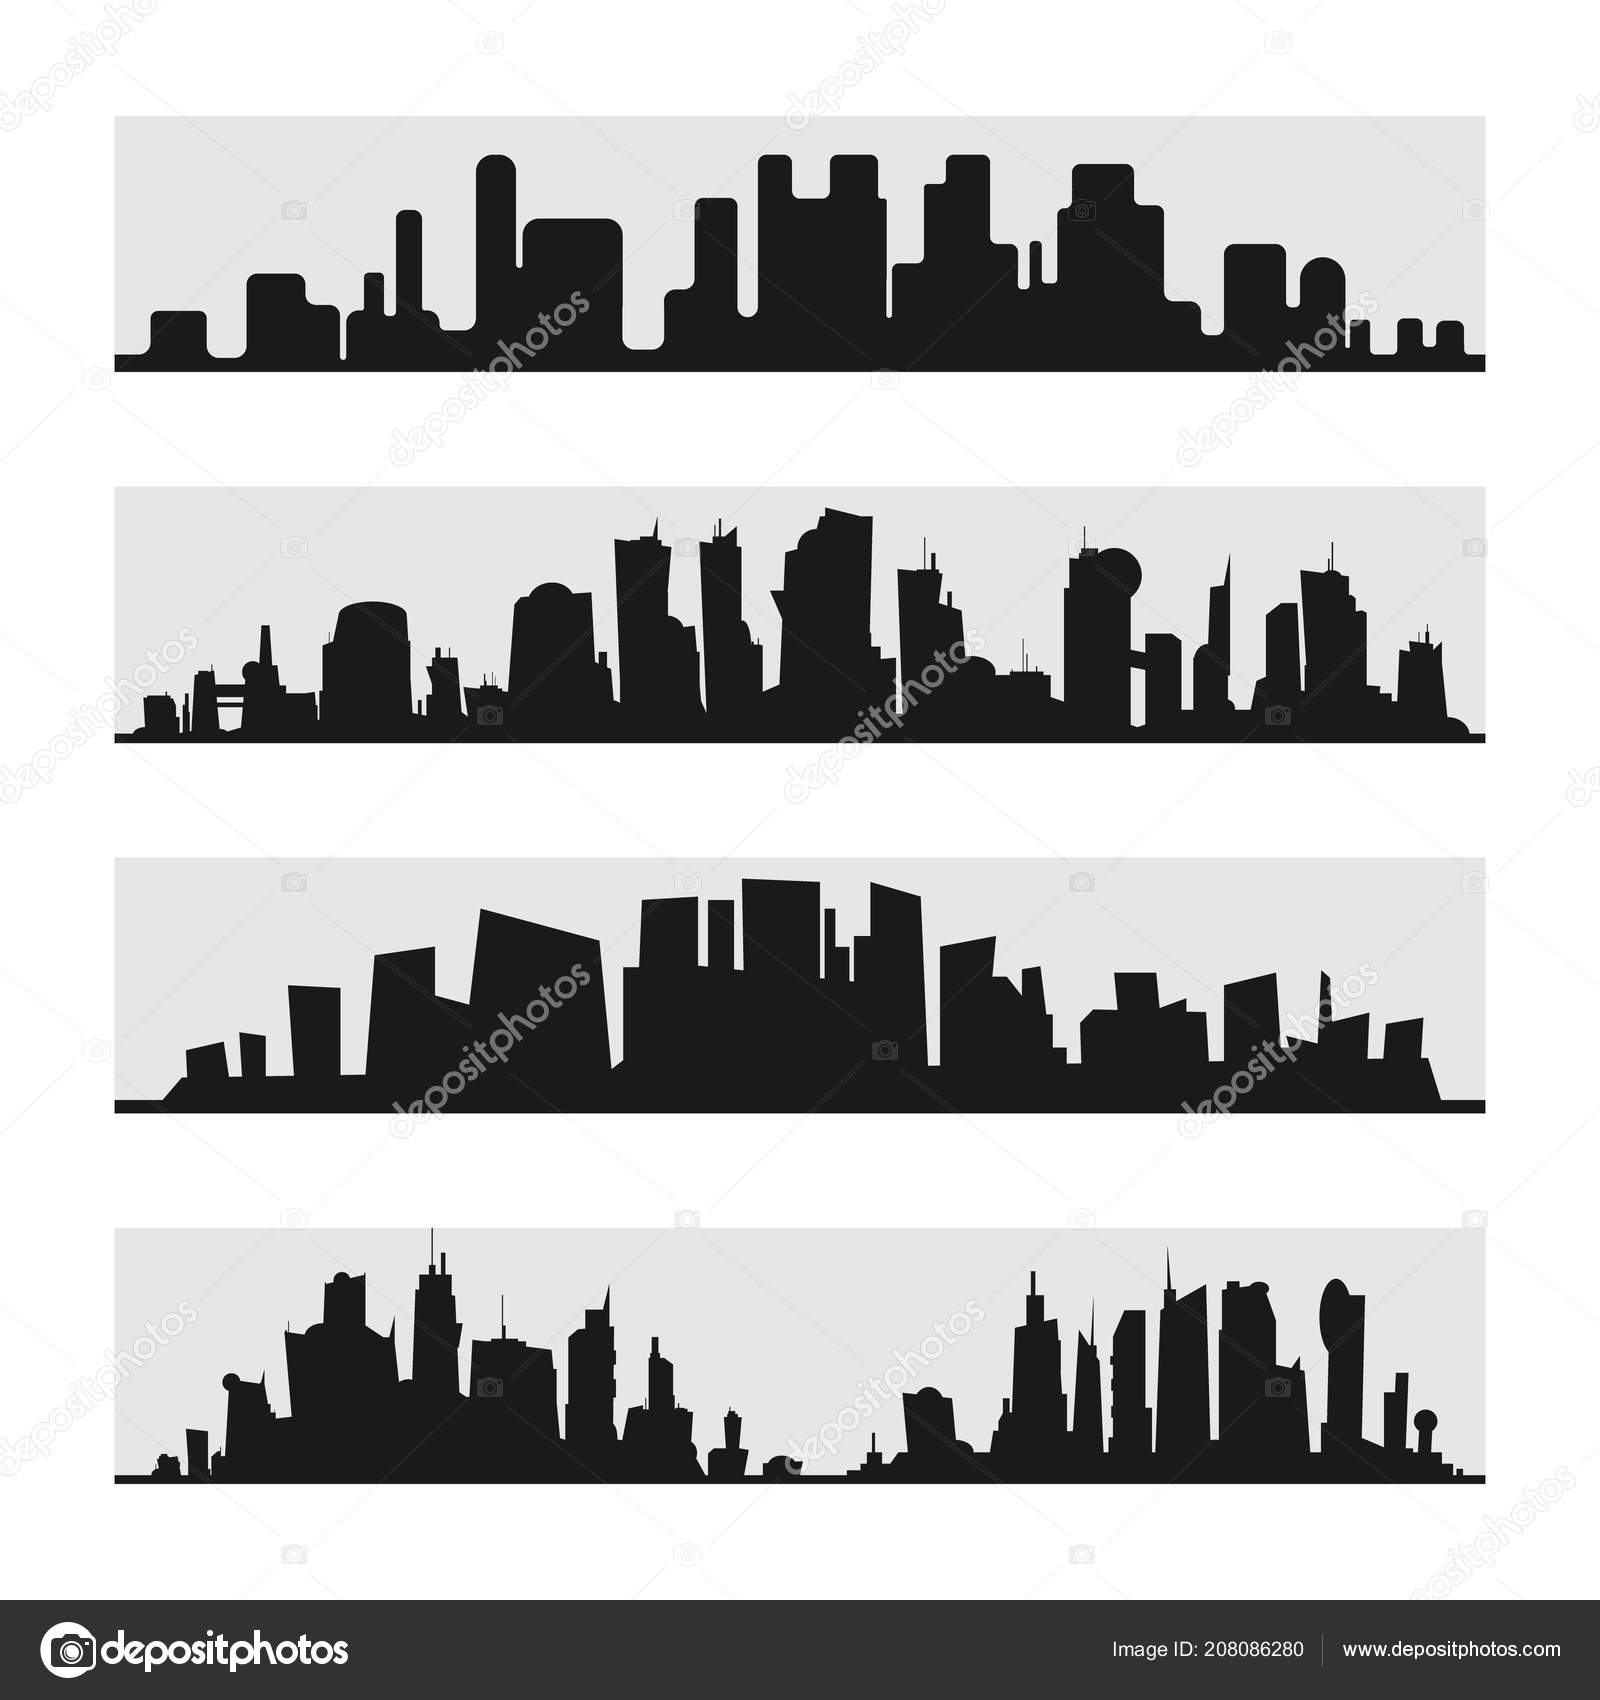 City skyline flat style ikril 208086280 vector black city silhouette icon set isolatede silhouette of the city in a flat style on white backgroun ikril voltagebd Images